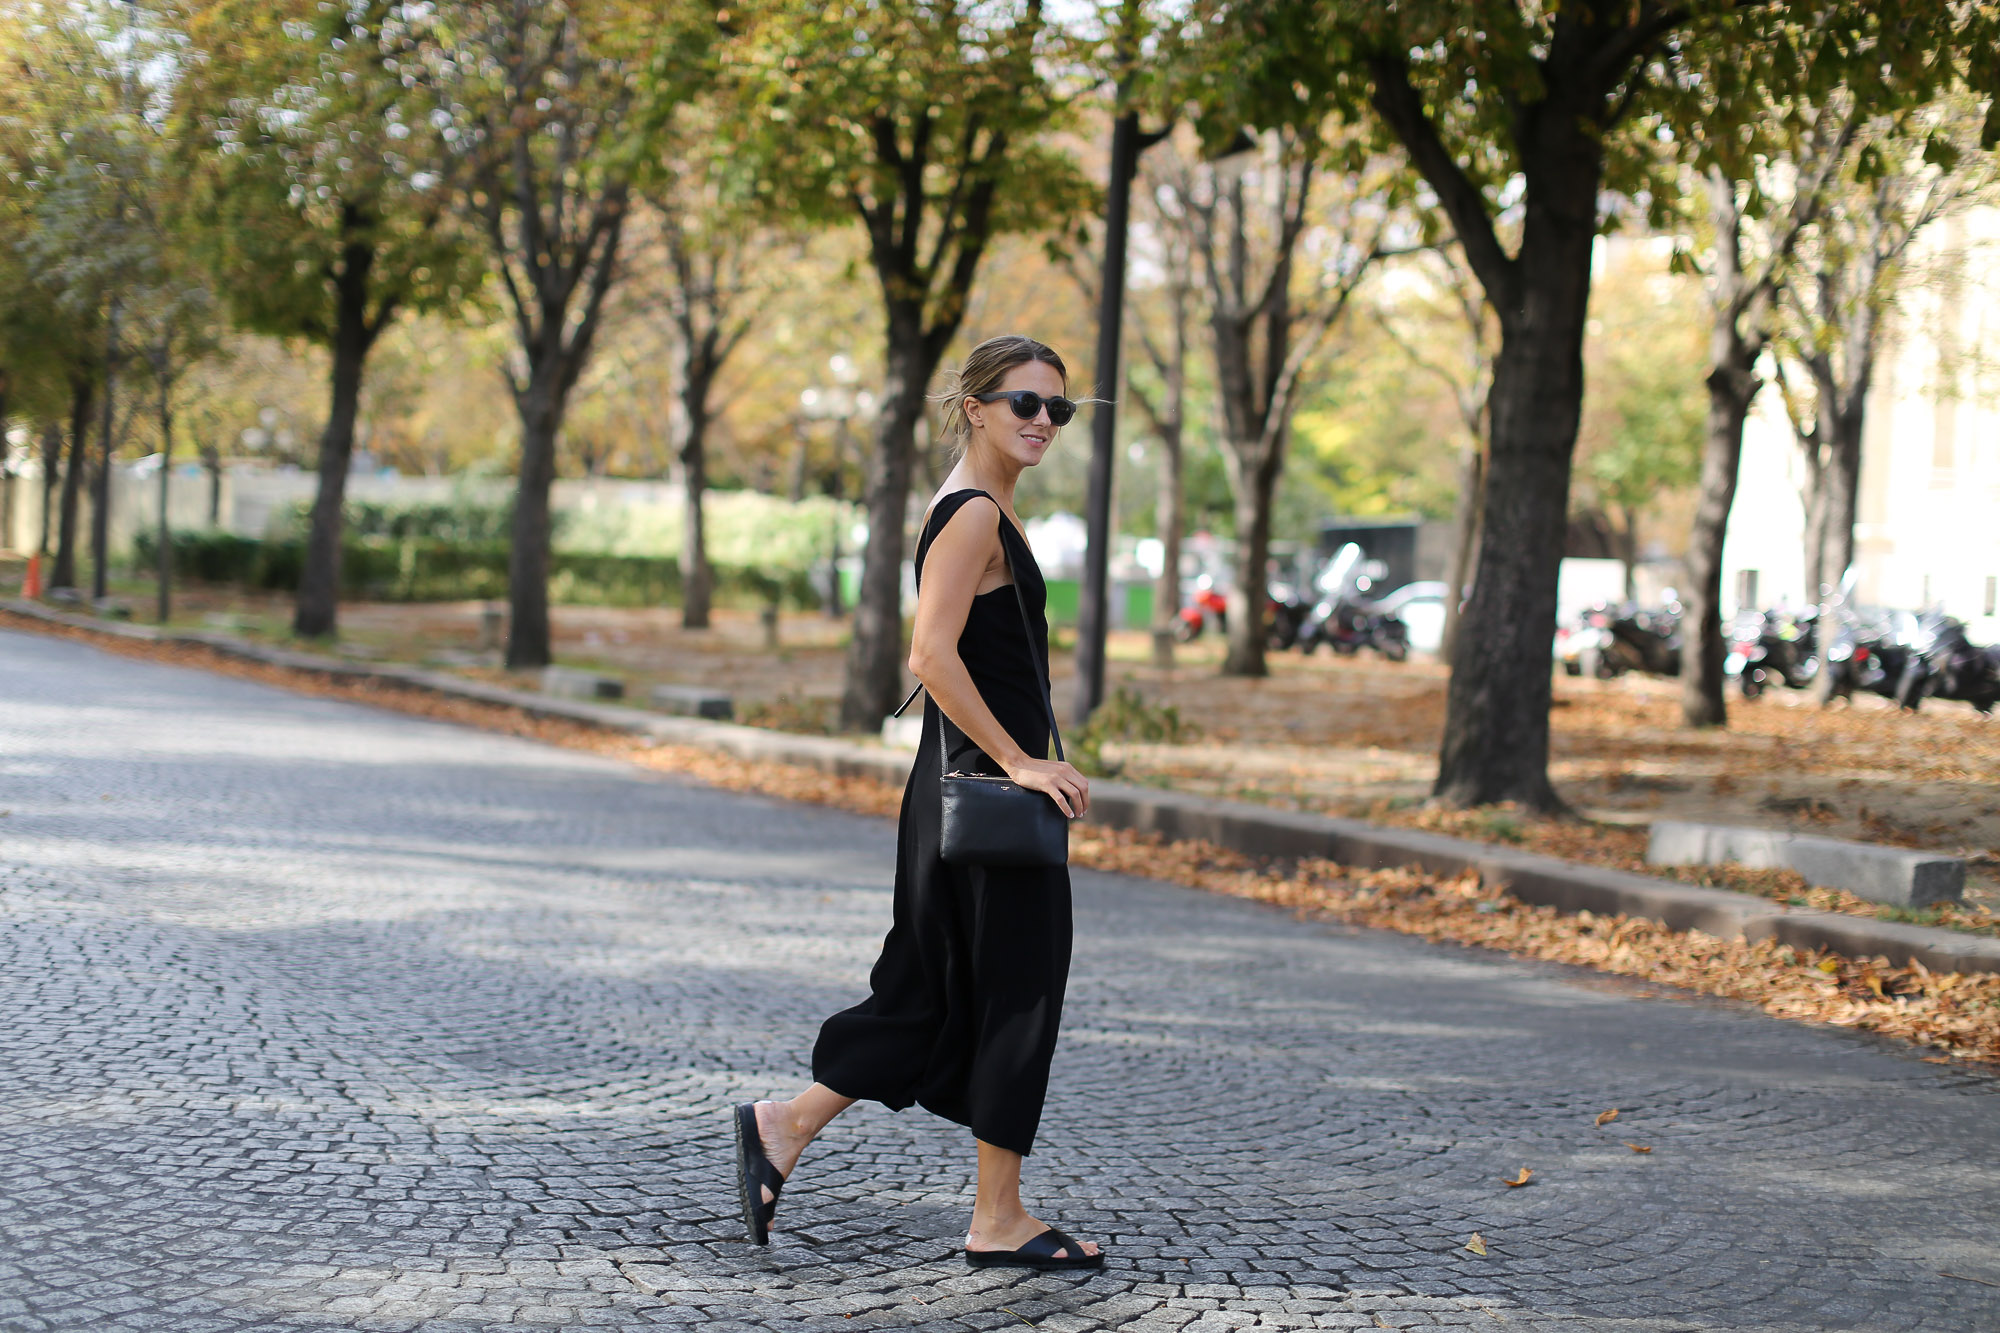 Clochet-paris-fashion-week-streetstyle-zara-jumpsuit-sliders-celine-trio-bag-1-8